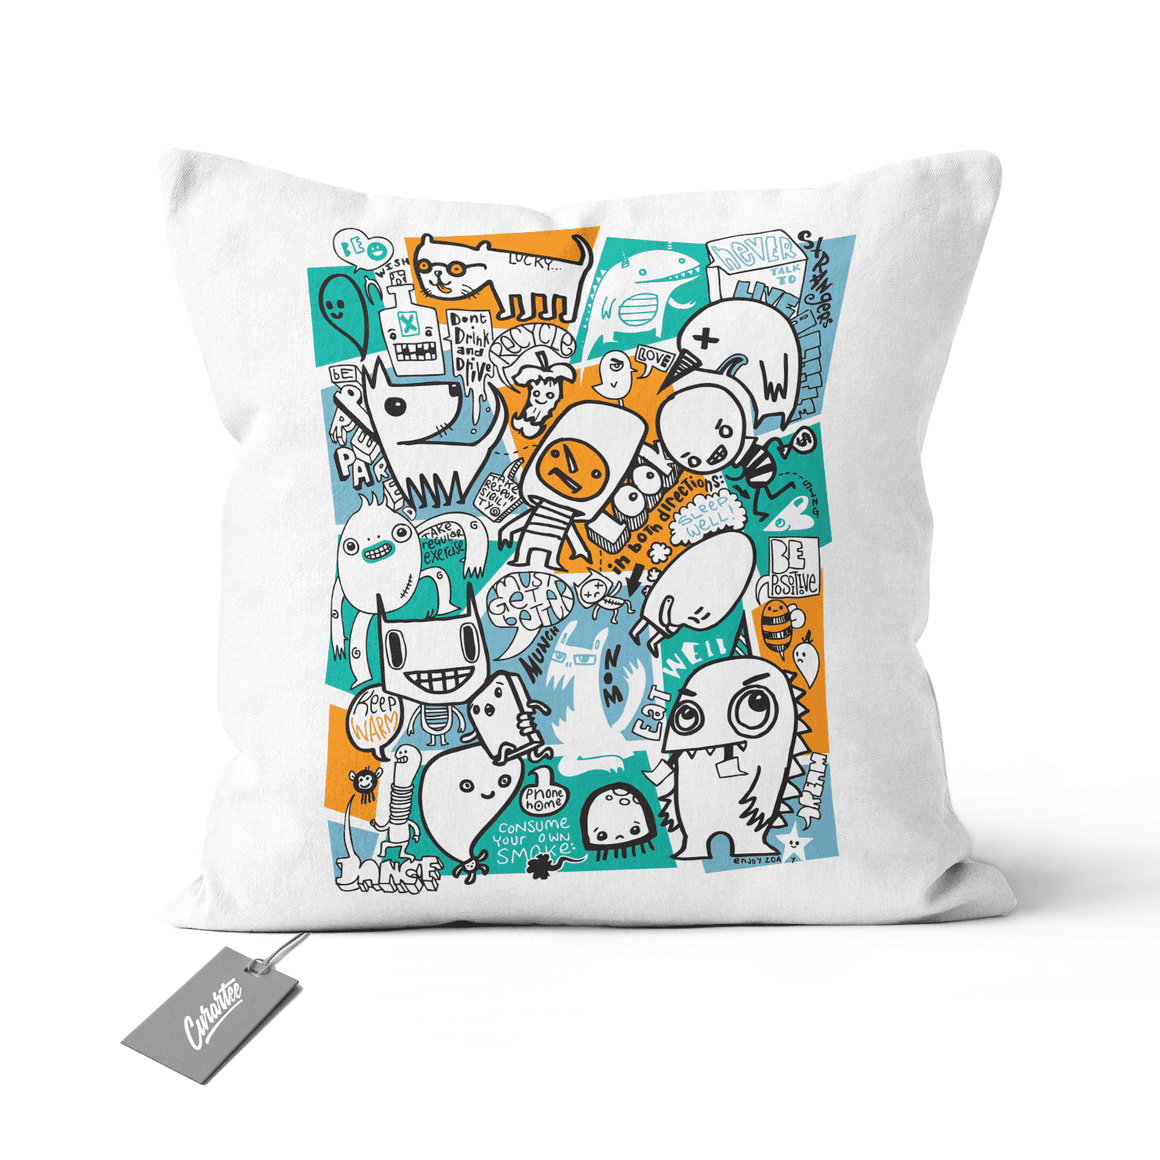 Advice Cushion - Premium Artwear Curartee